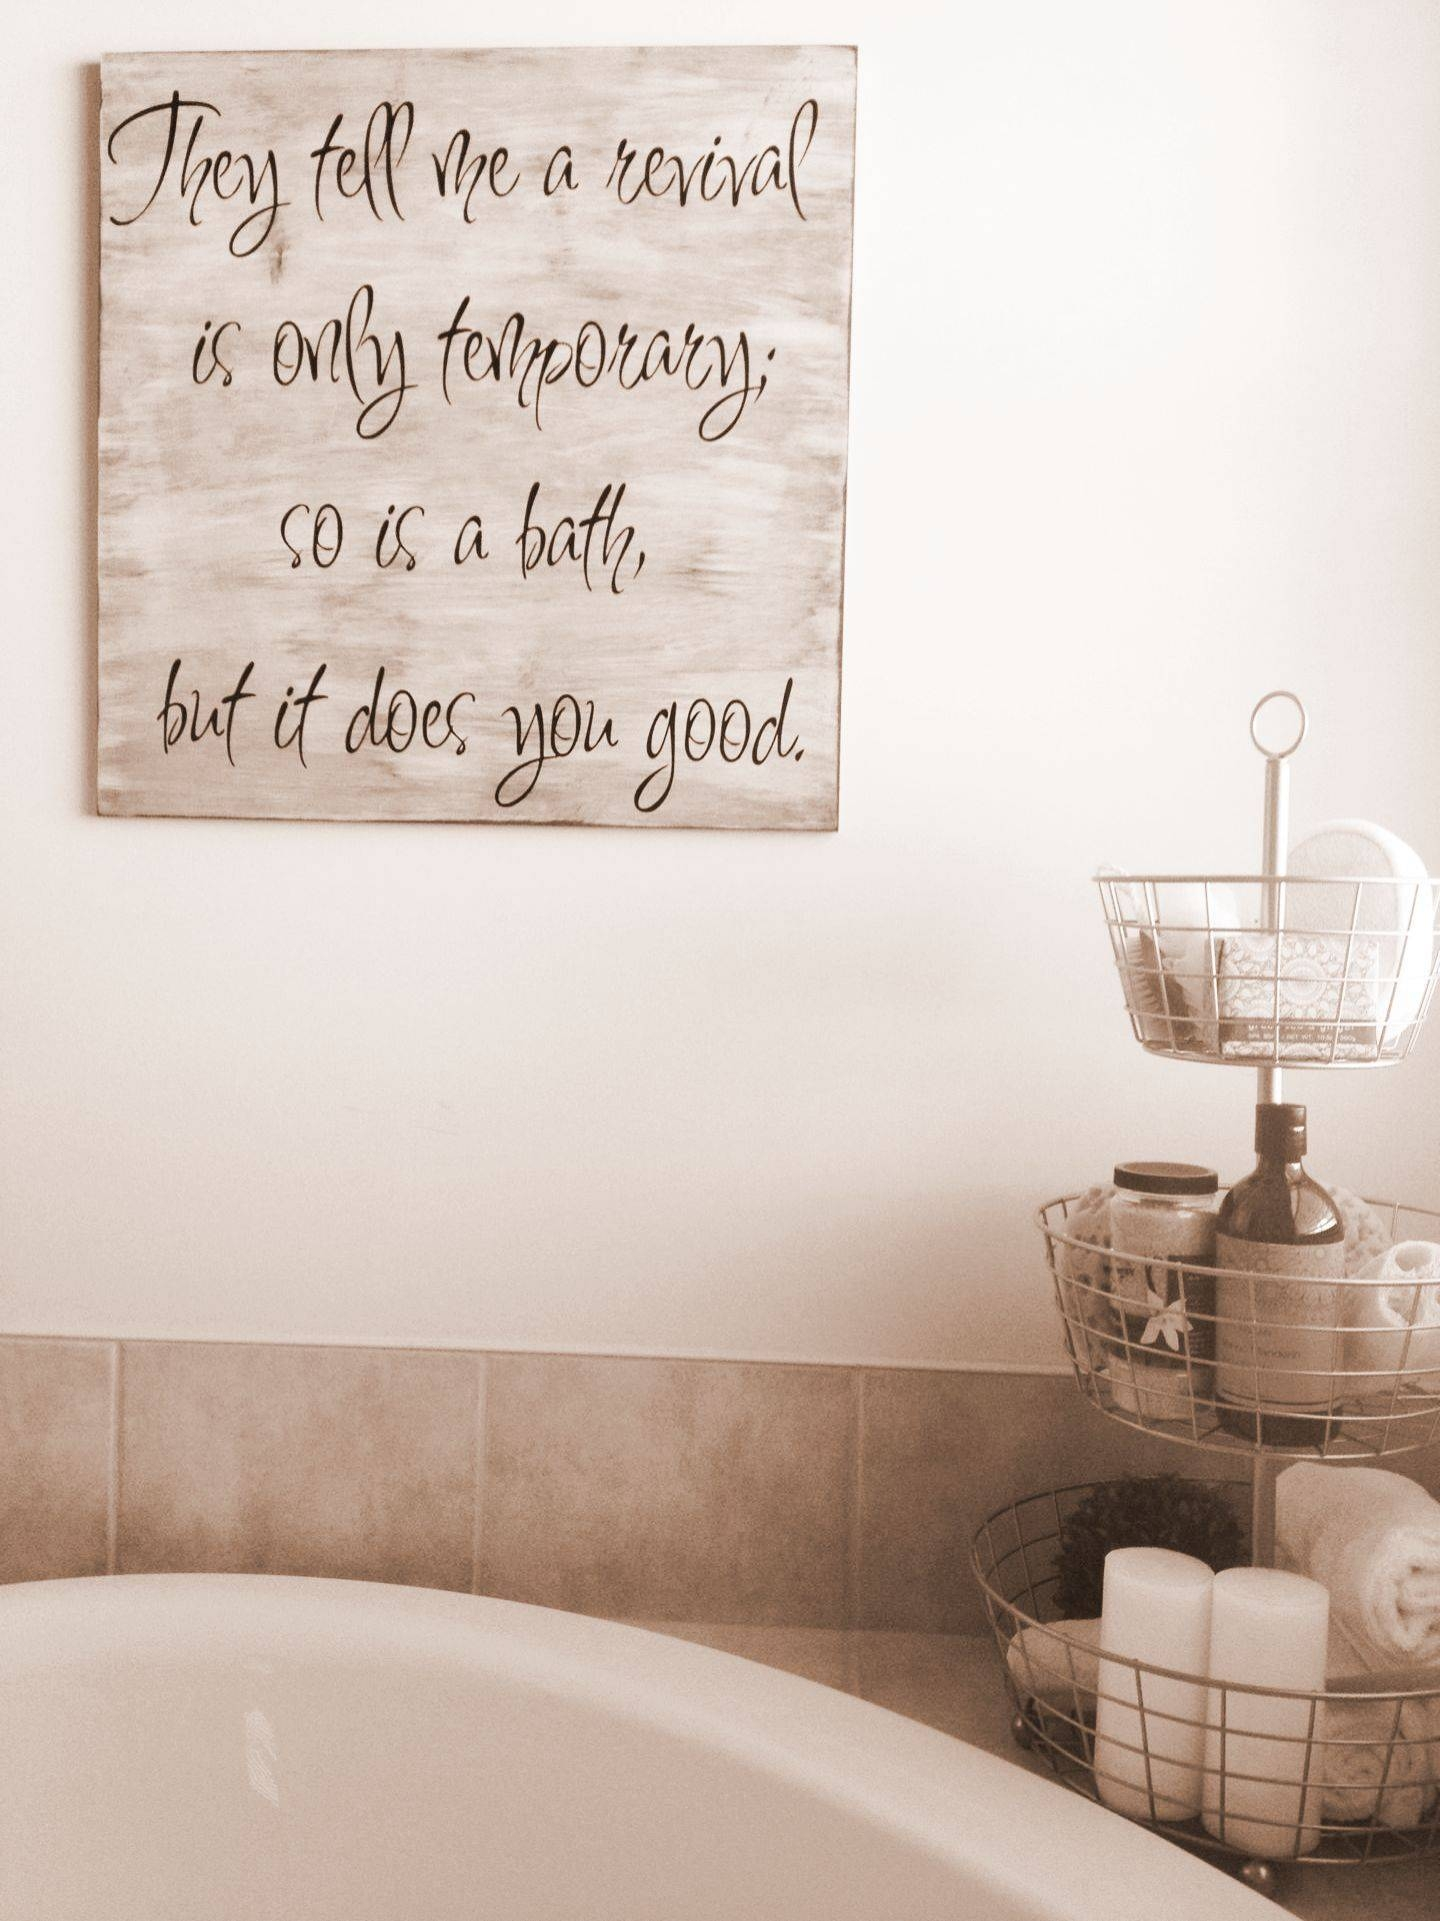 Lovely Bathroom Wall Art Ideas Decor For Your Home Decorating Inside Current Shower Room Wall Art (View 7 of 15)